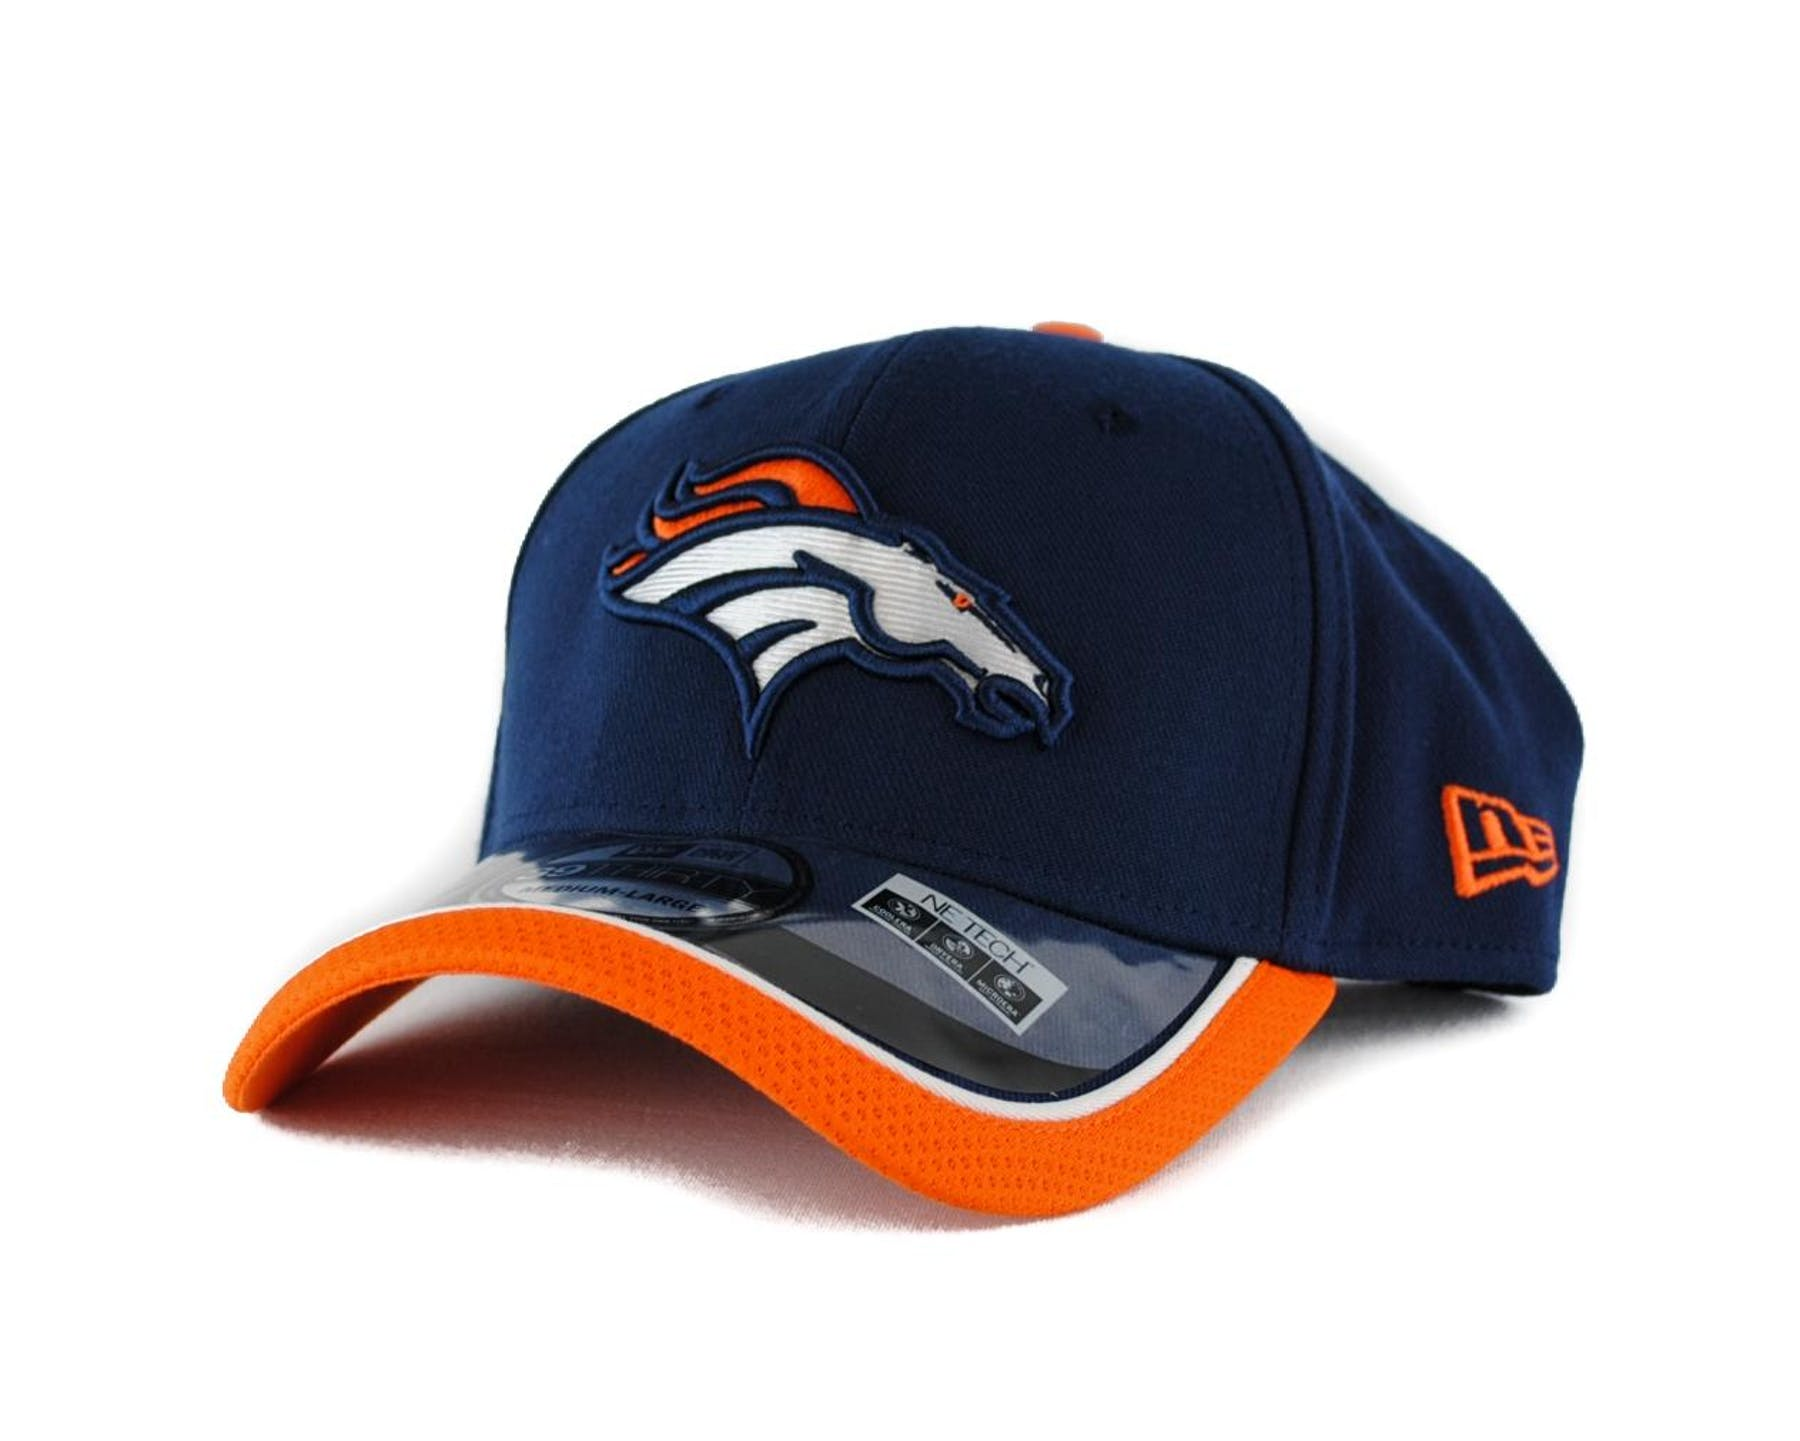 f6f0b922d Denver Broncos New Era Navy Team Colors 39Thirty On Field Fitted Hat